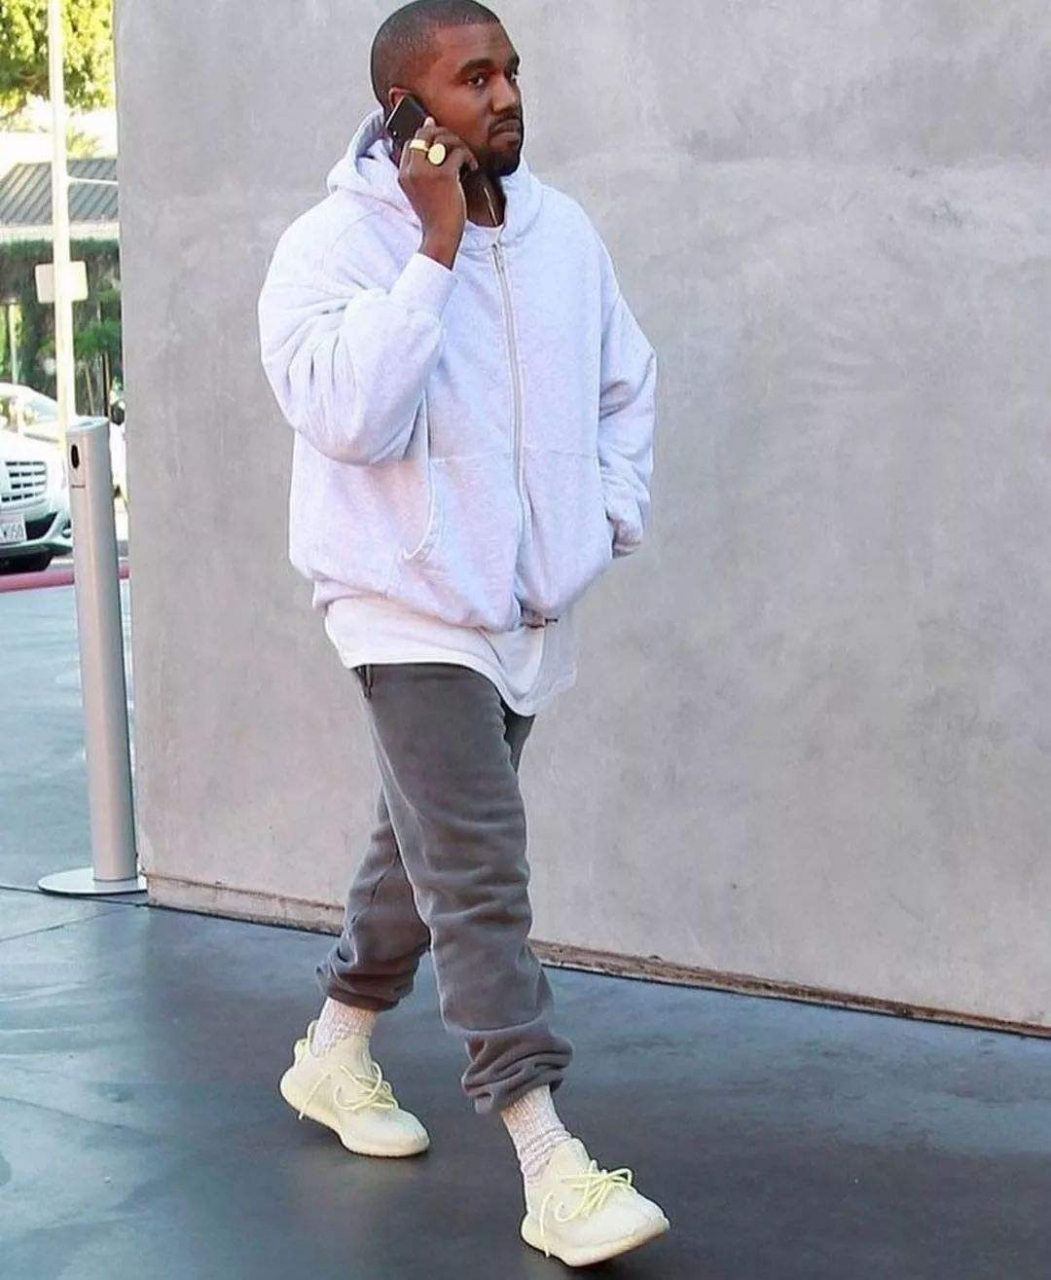 best sneakers 8a84b 6186f Adidas YEEZY Boost 350V2 butter color, as shown, is not satisfied with the  refund Butter color UK6